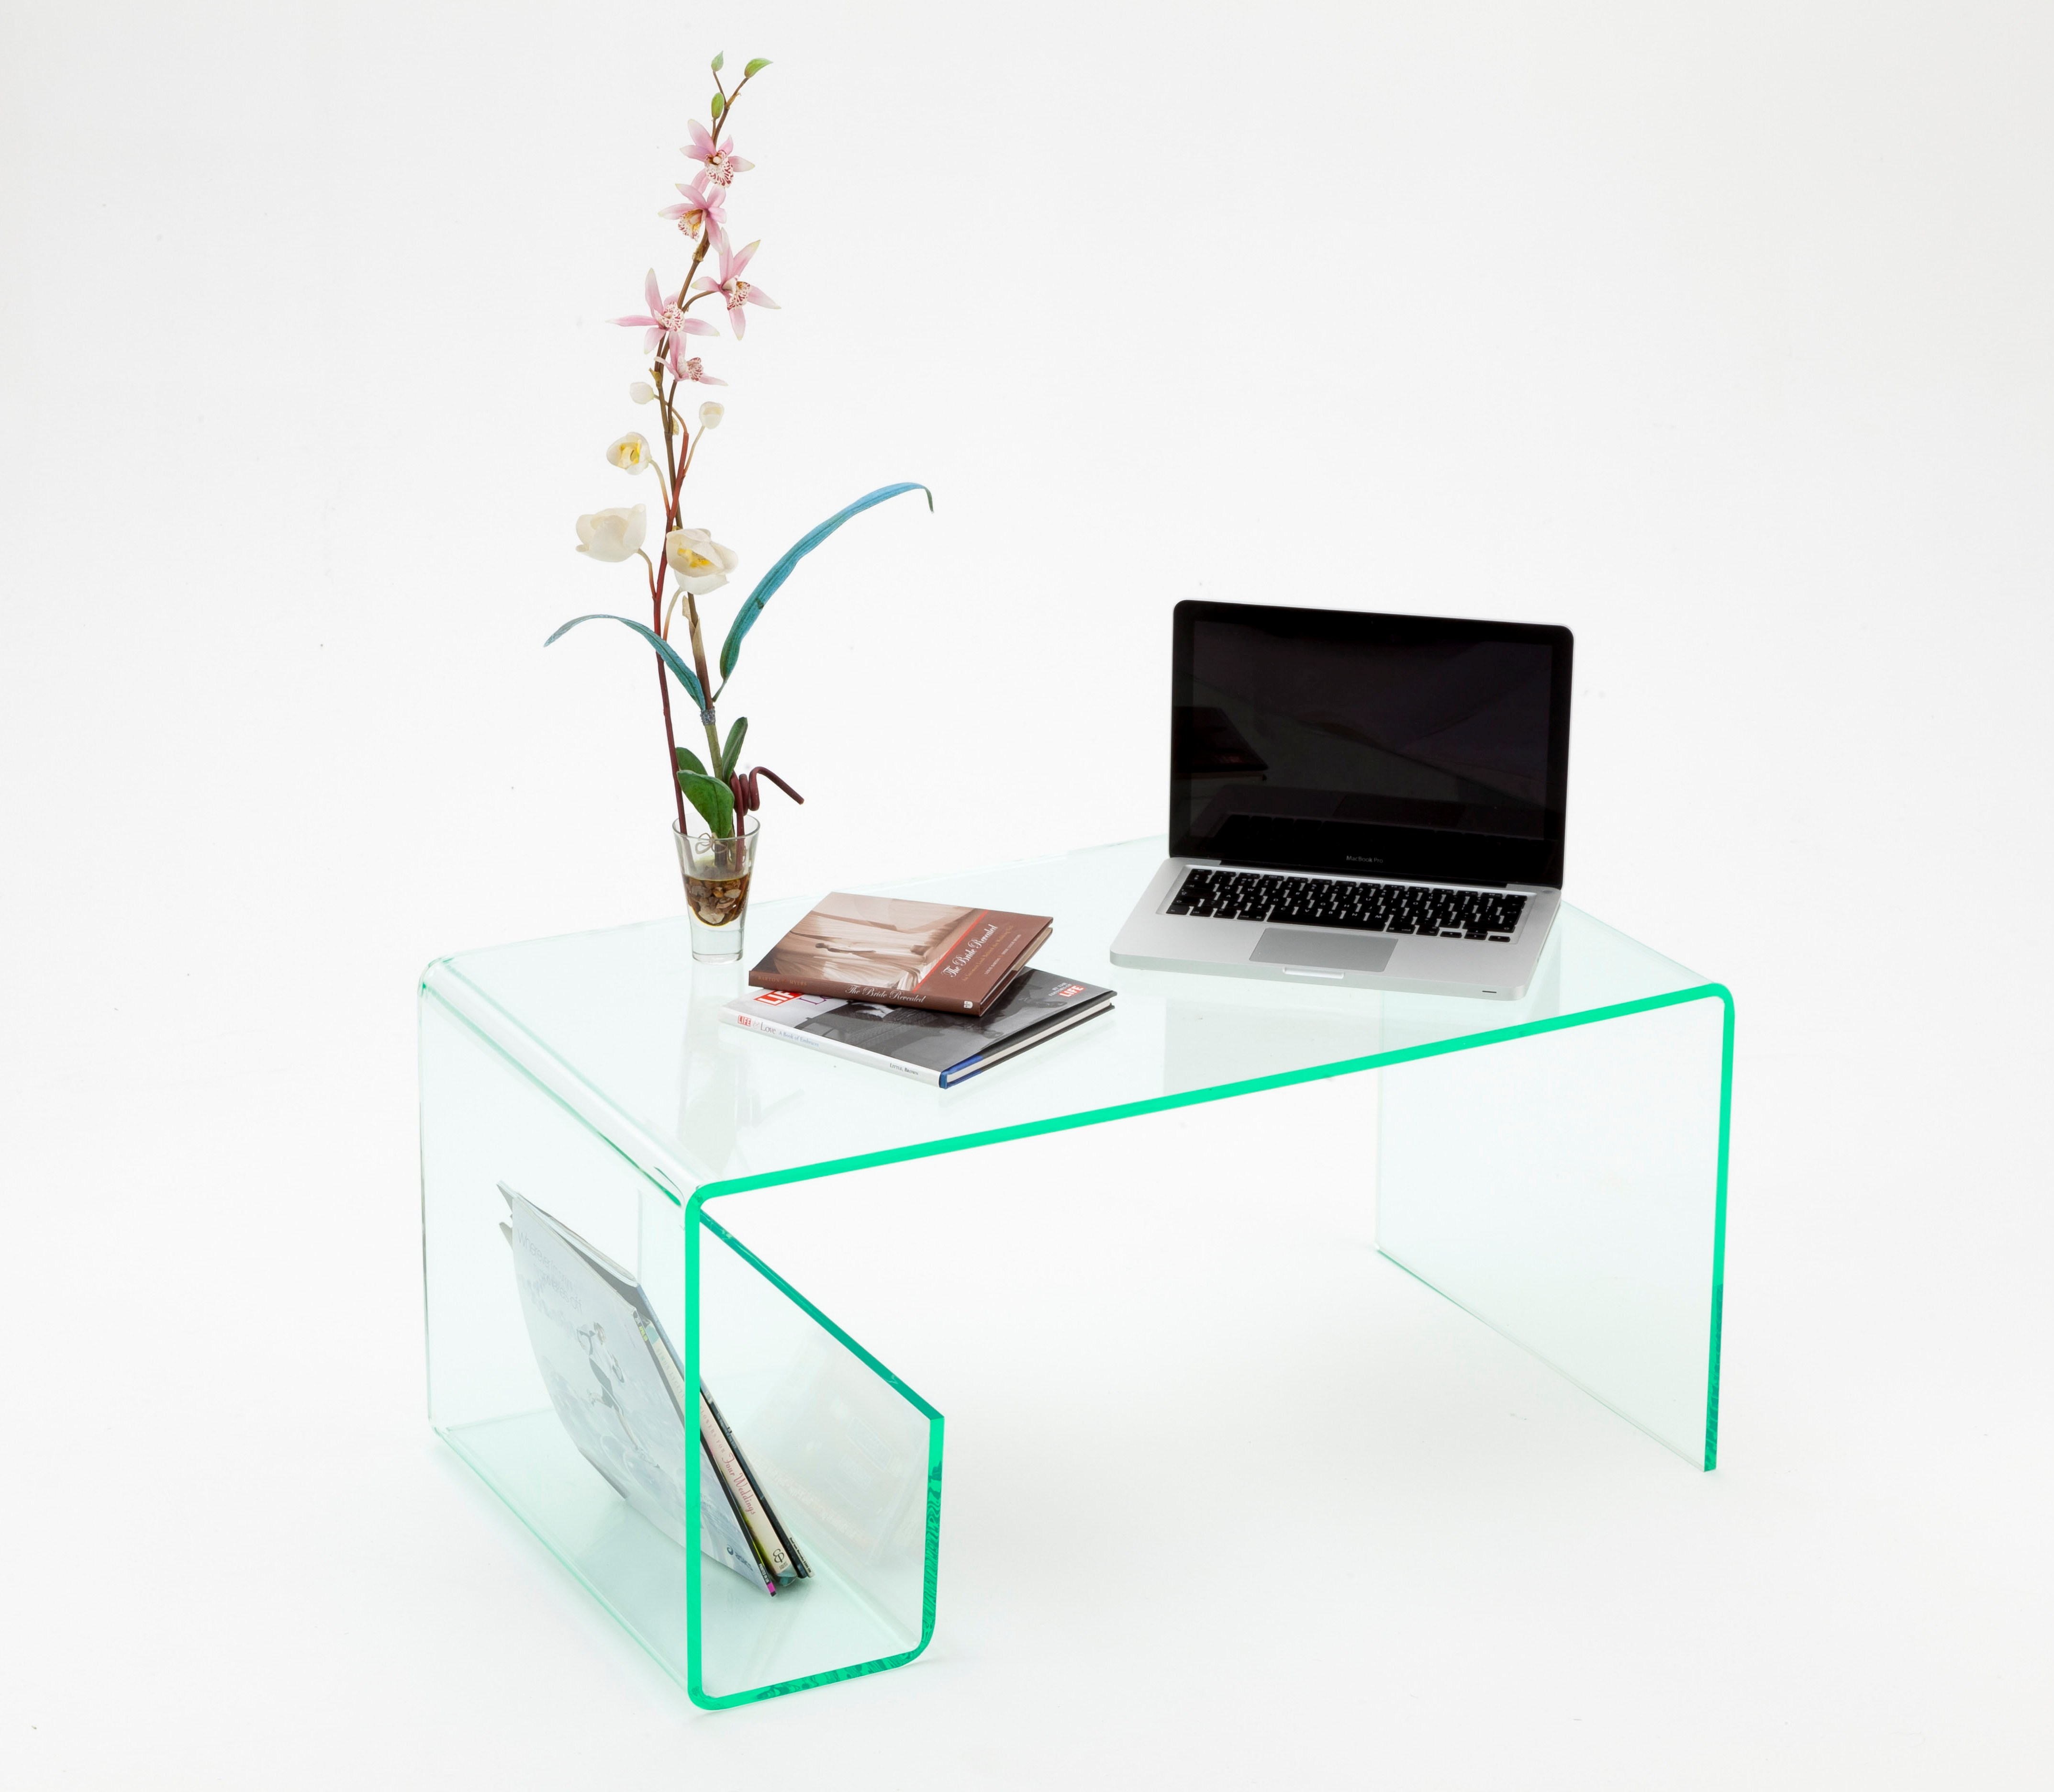 Glass Effect Acrylic Coffee Table | Buy Direct from GPX